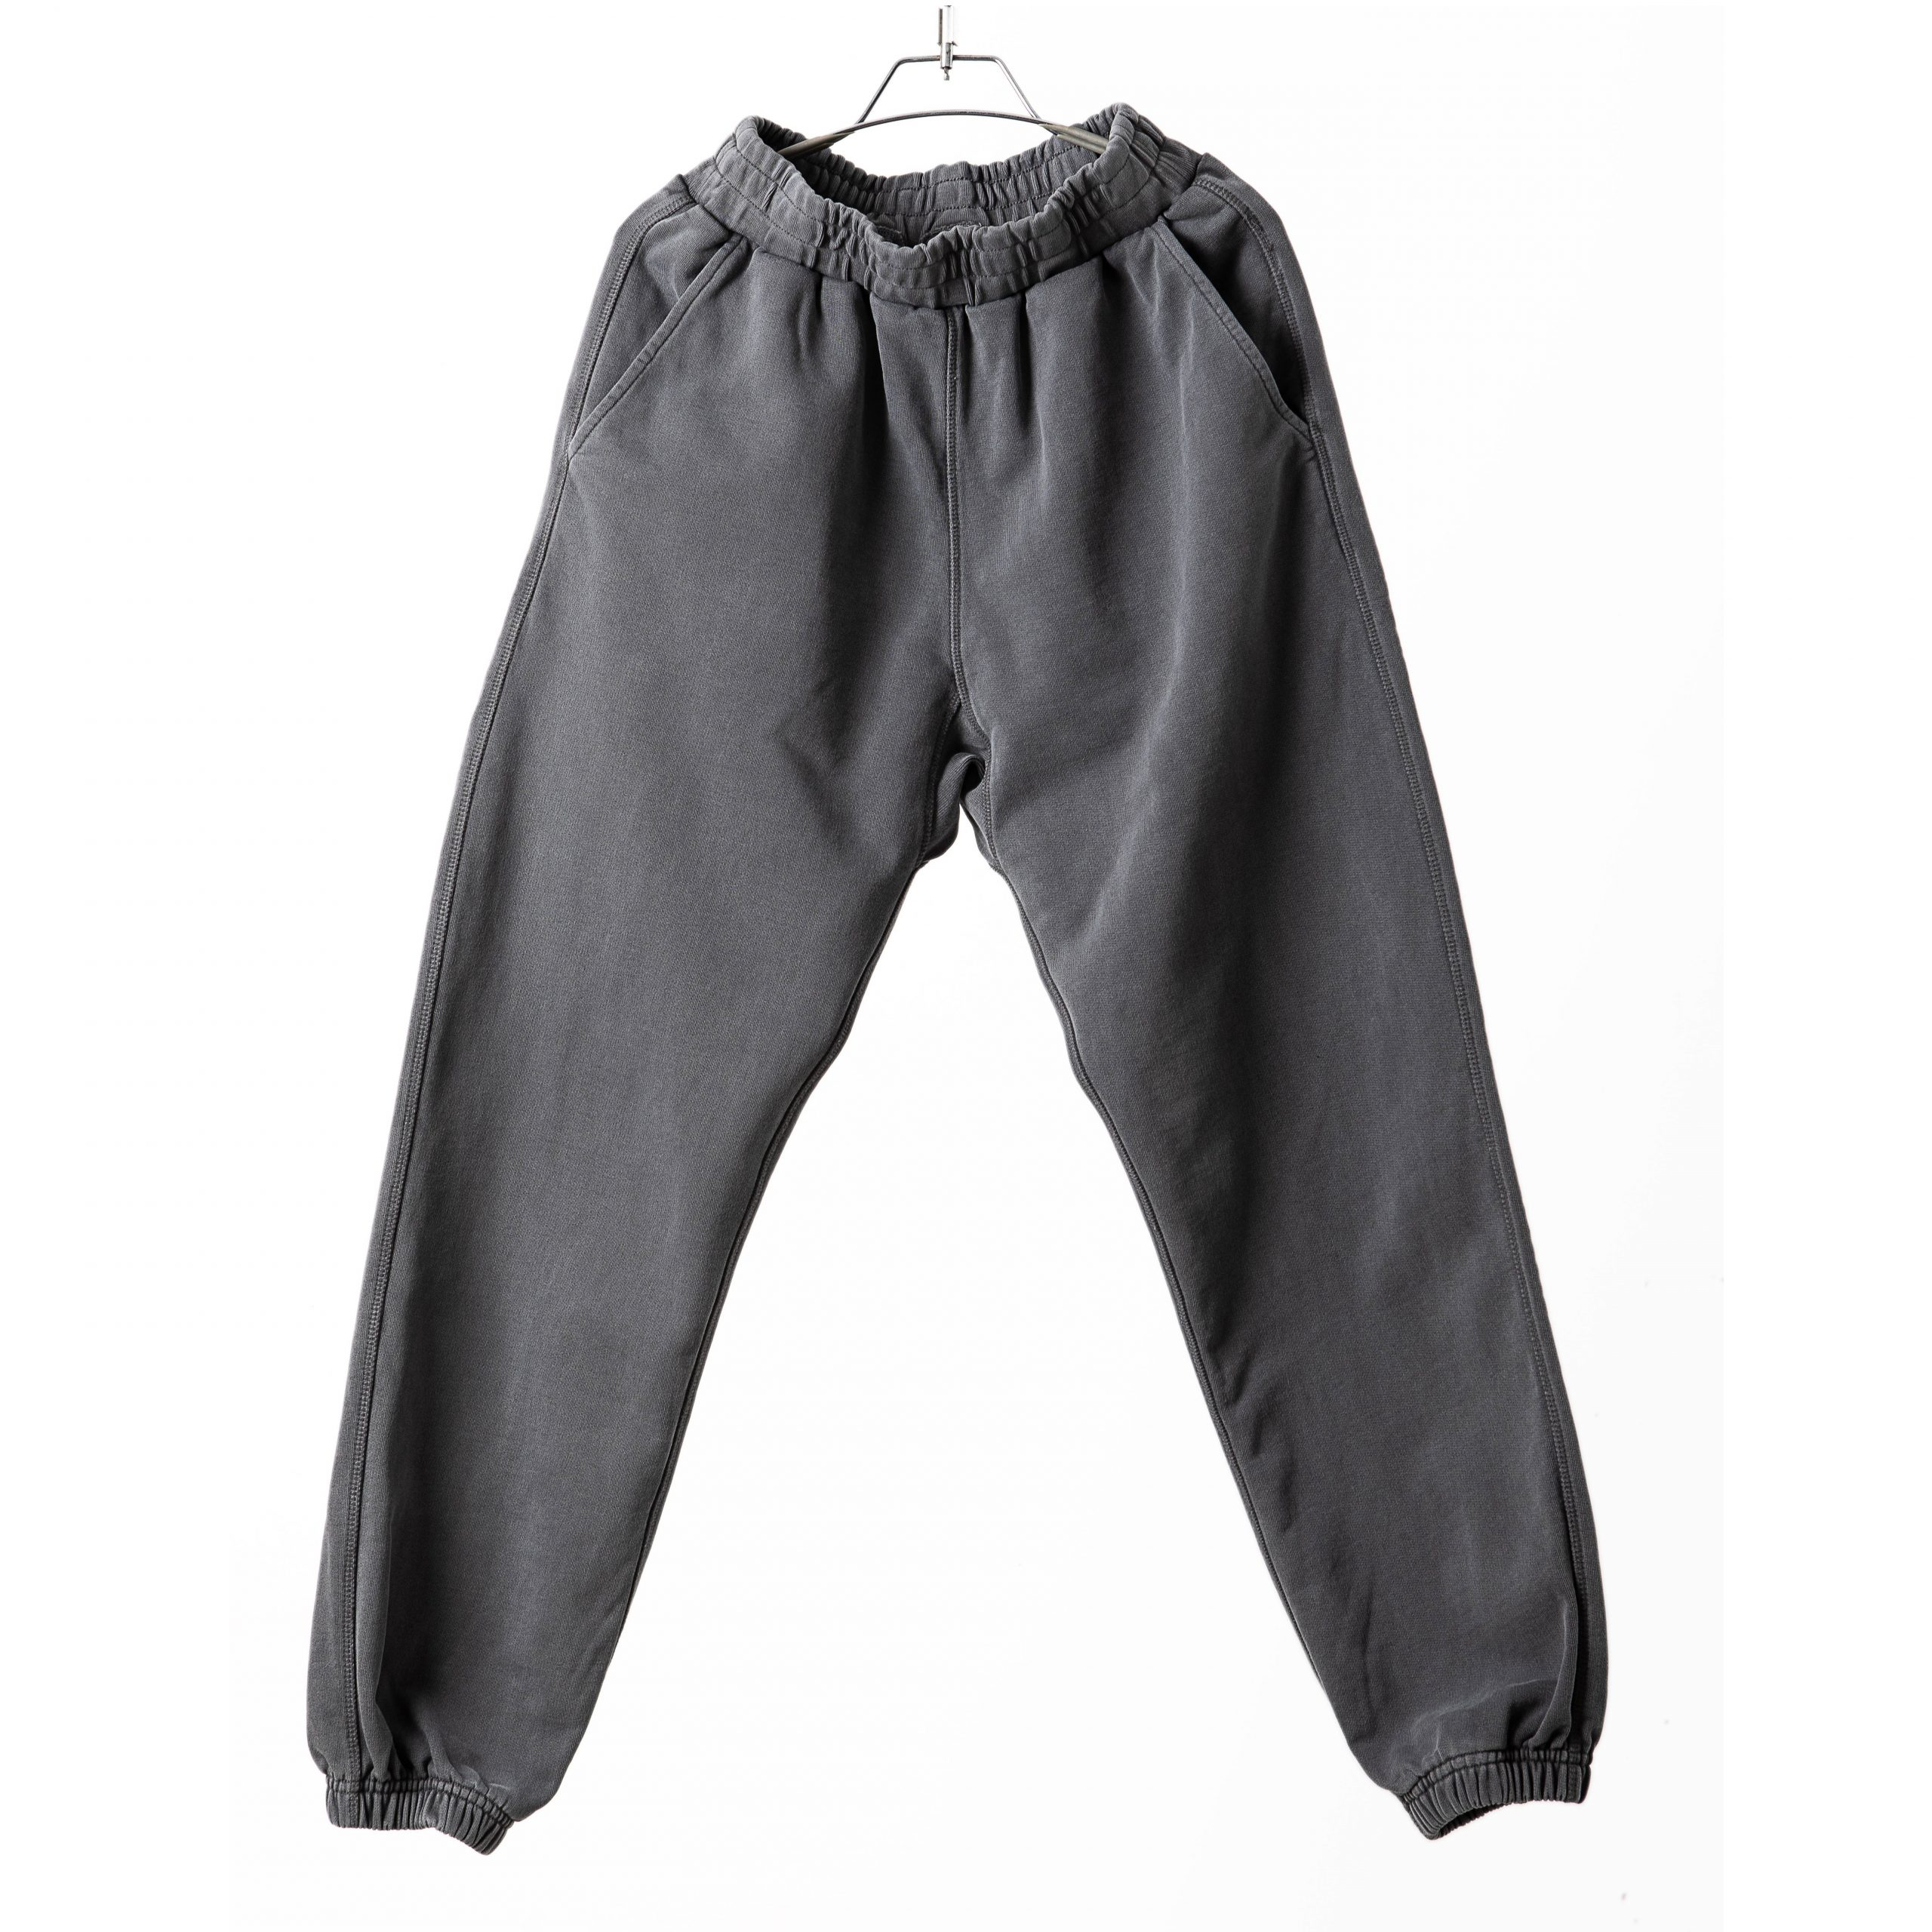 Heavy Weight 520g Cotton Sweatpants Japanese Streetwear brand Meta